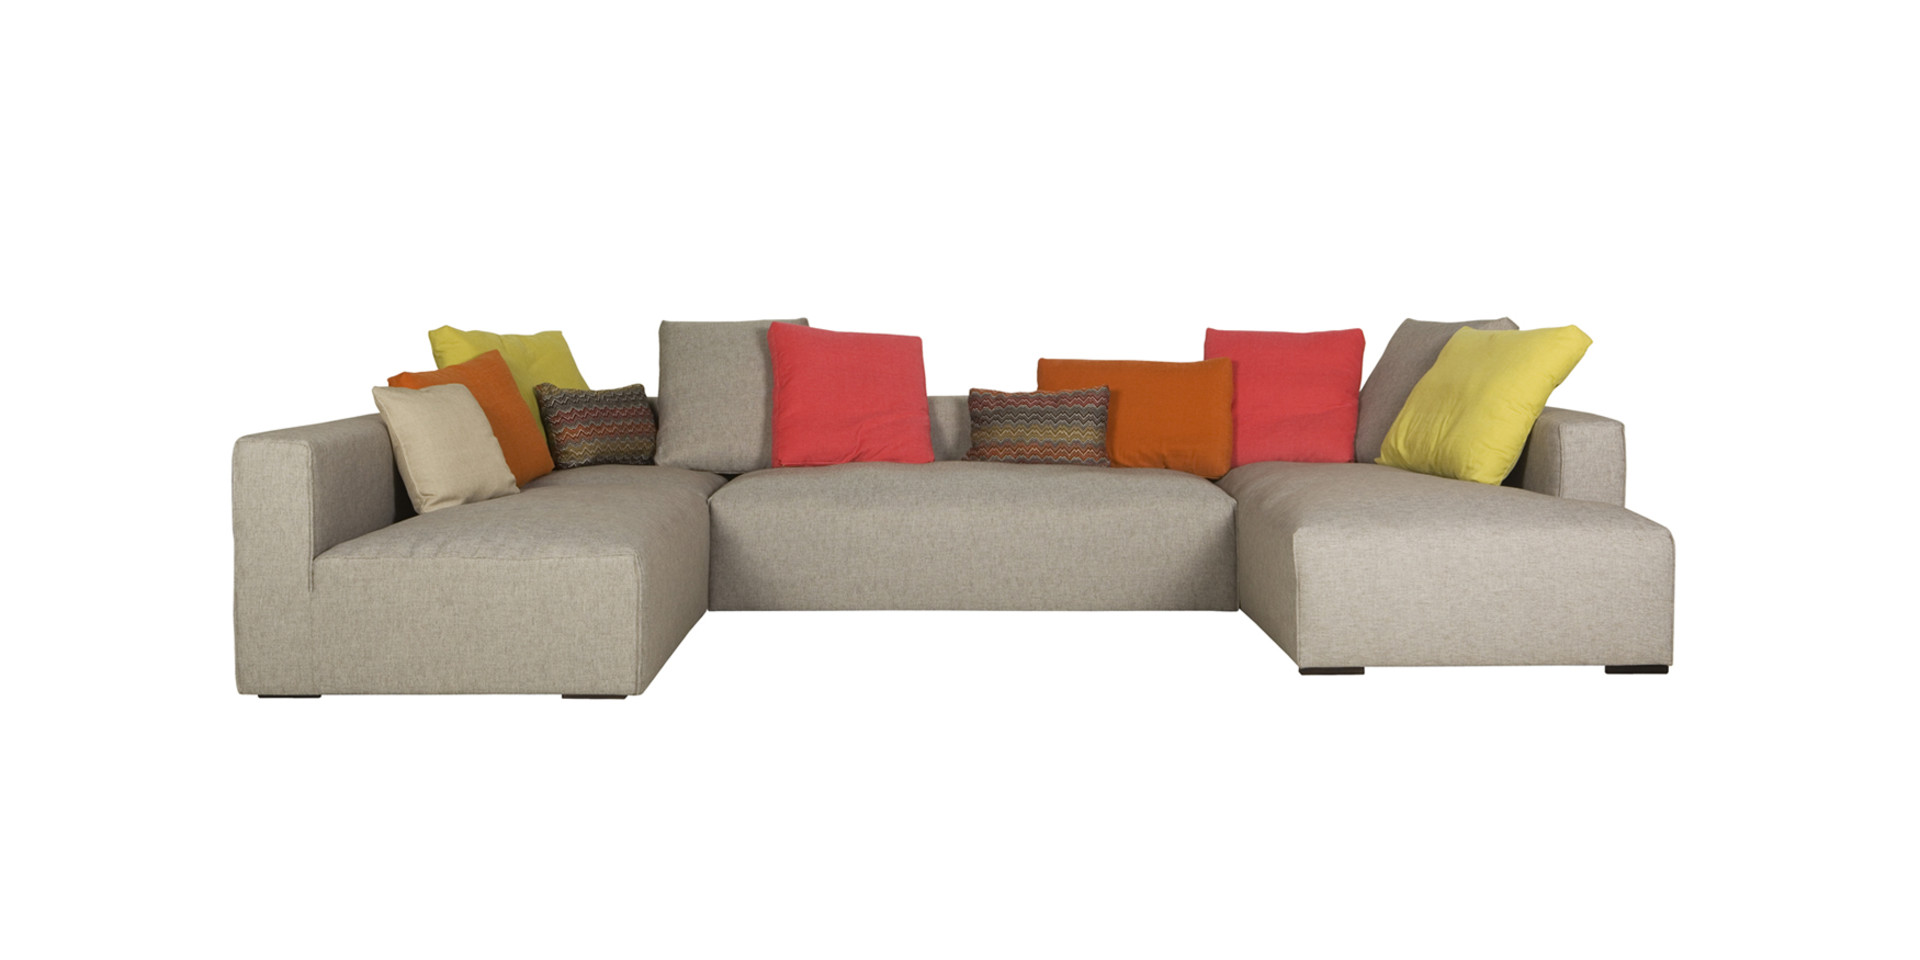 sits-liam-angle-25seater_element80left_element126_divanright_nancy4grey-beige_1